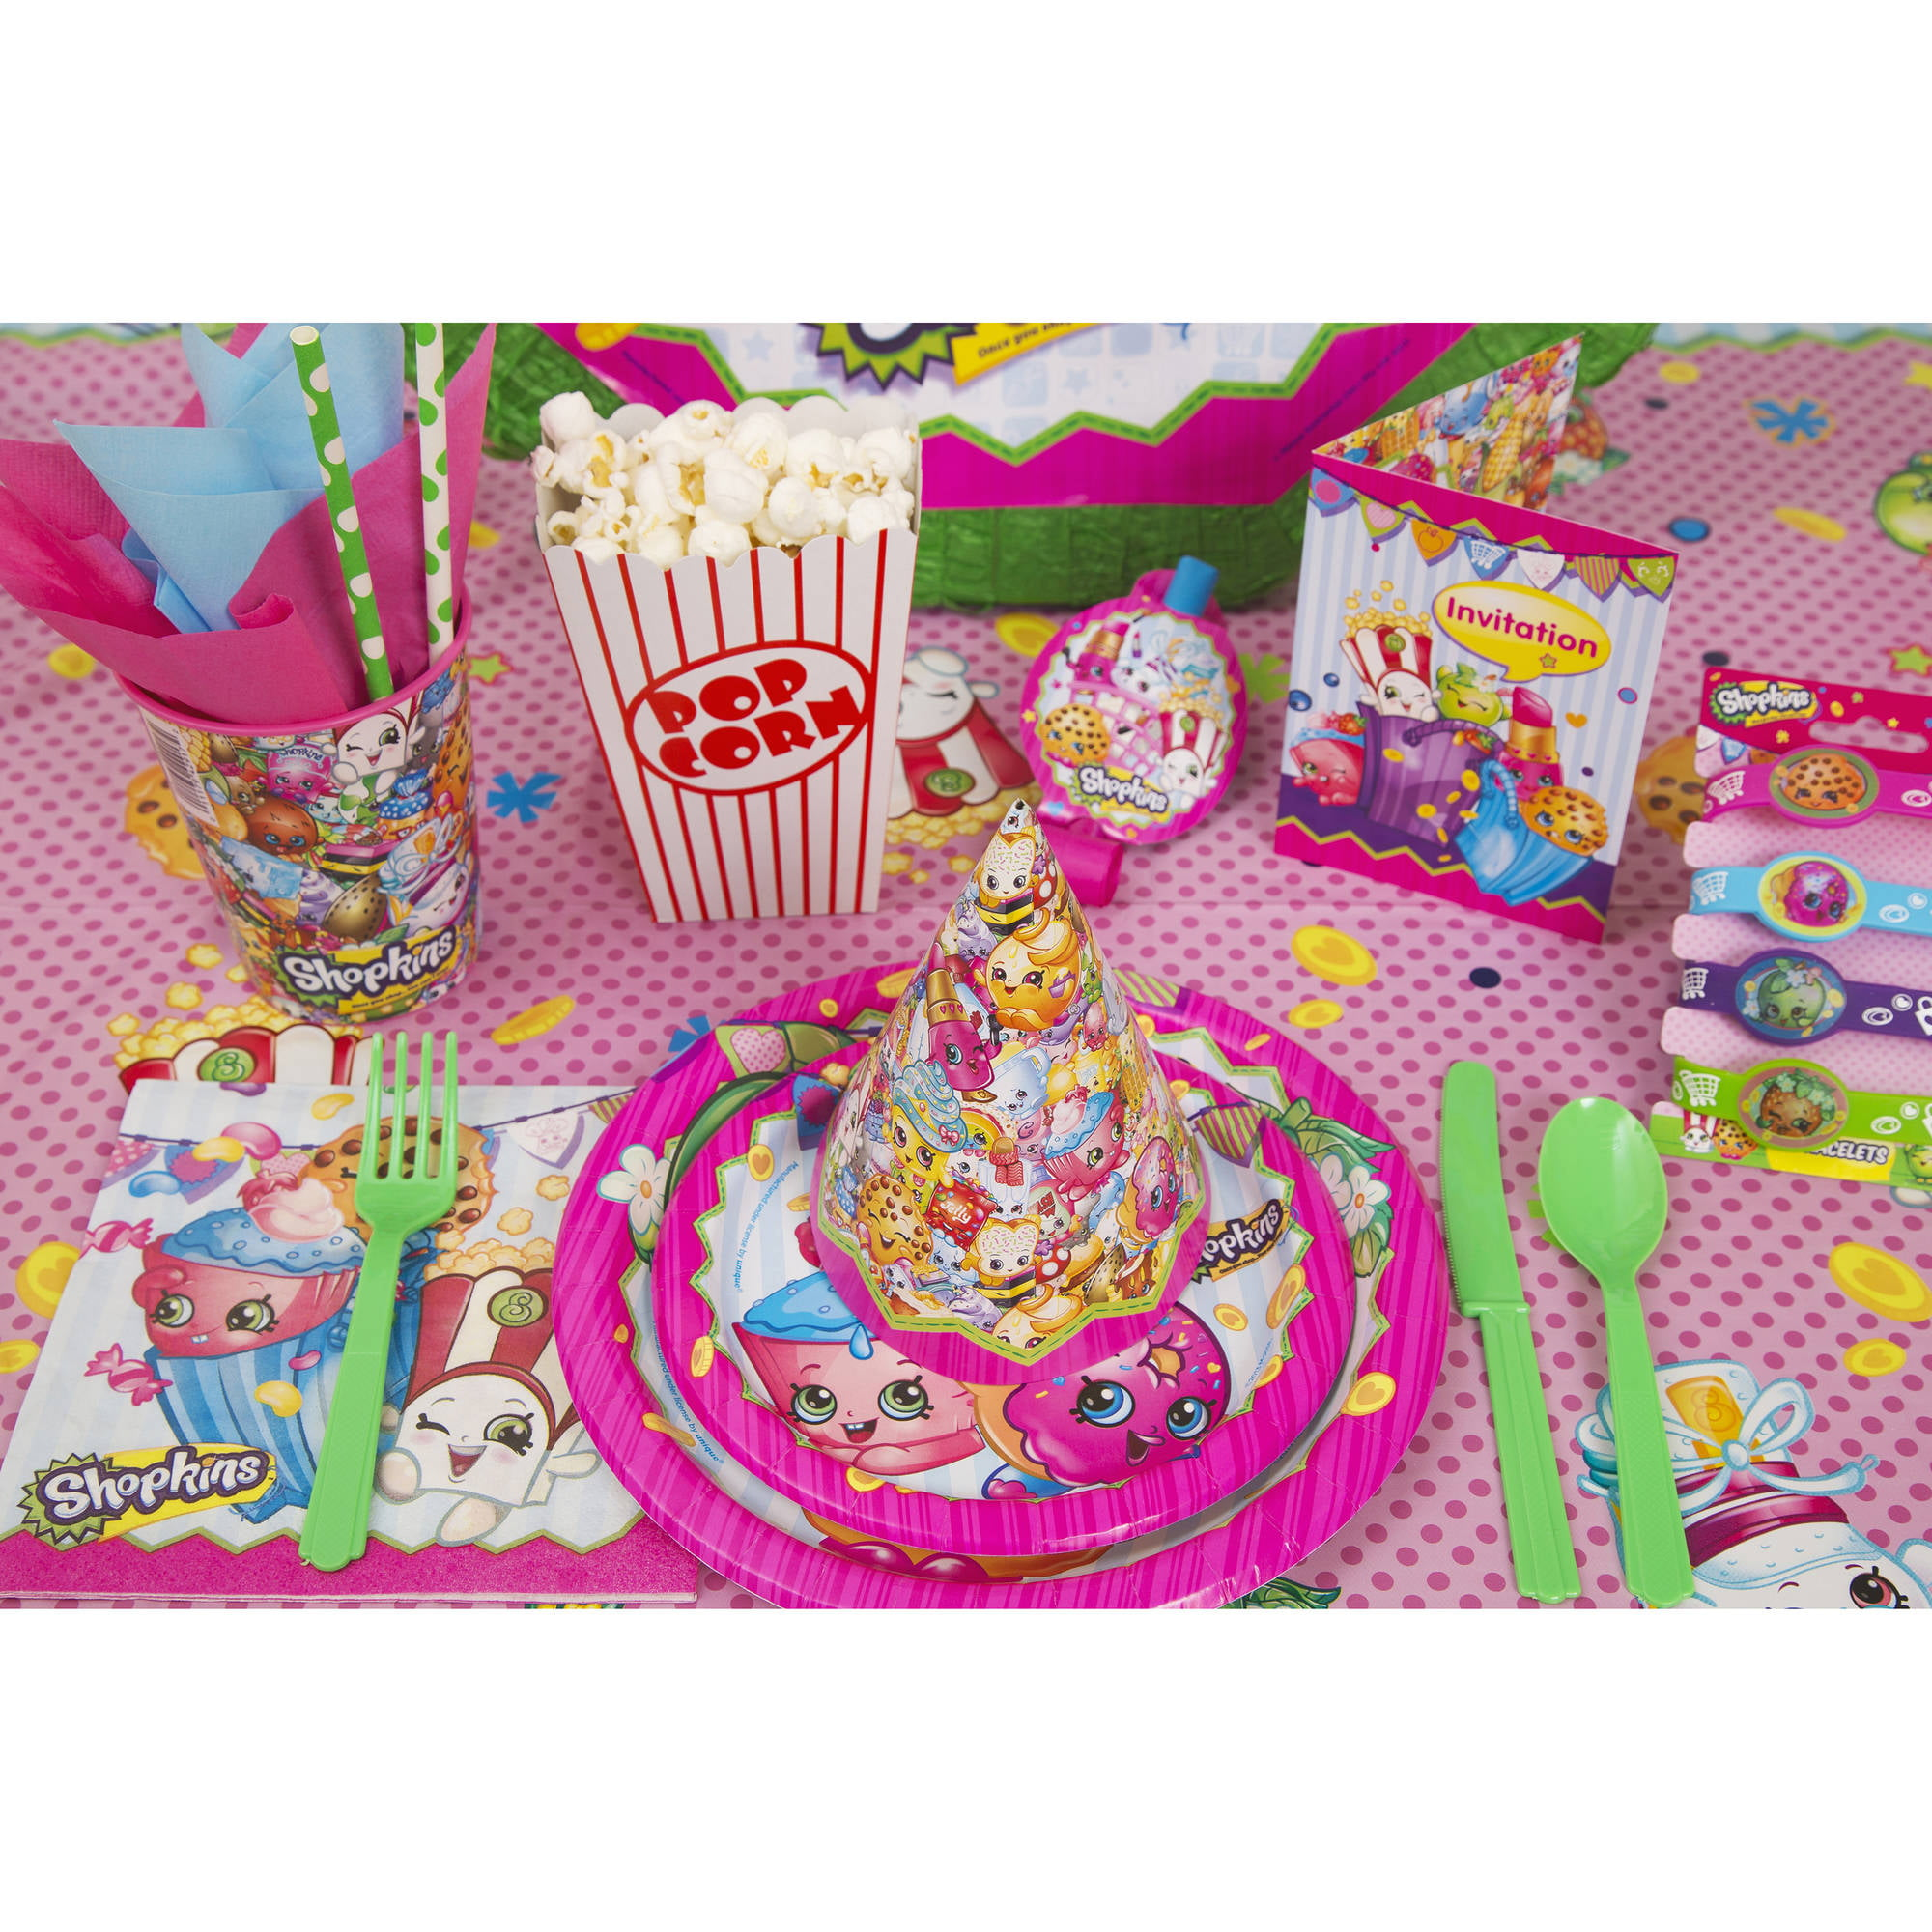 Shopkins Cake Topper and Birthday Candles Walmartcom